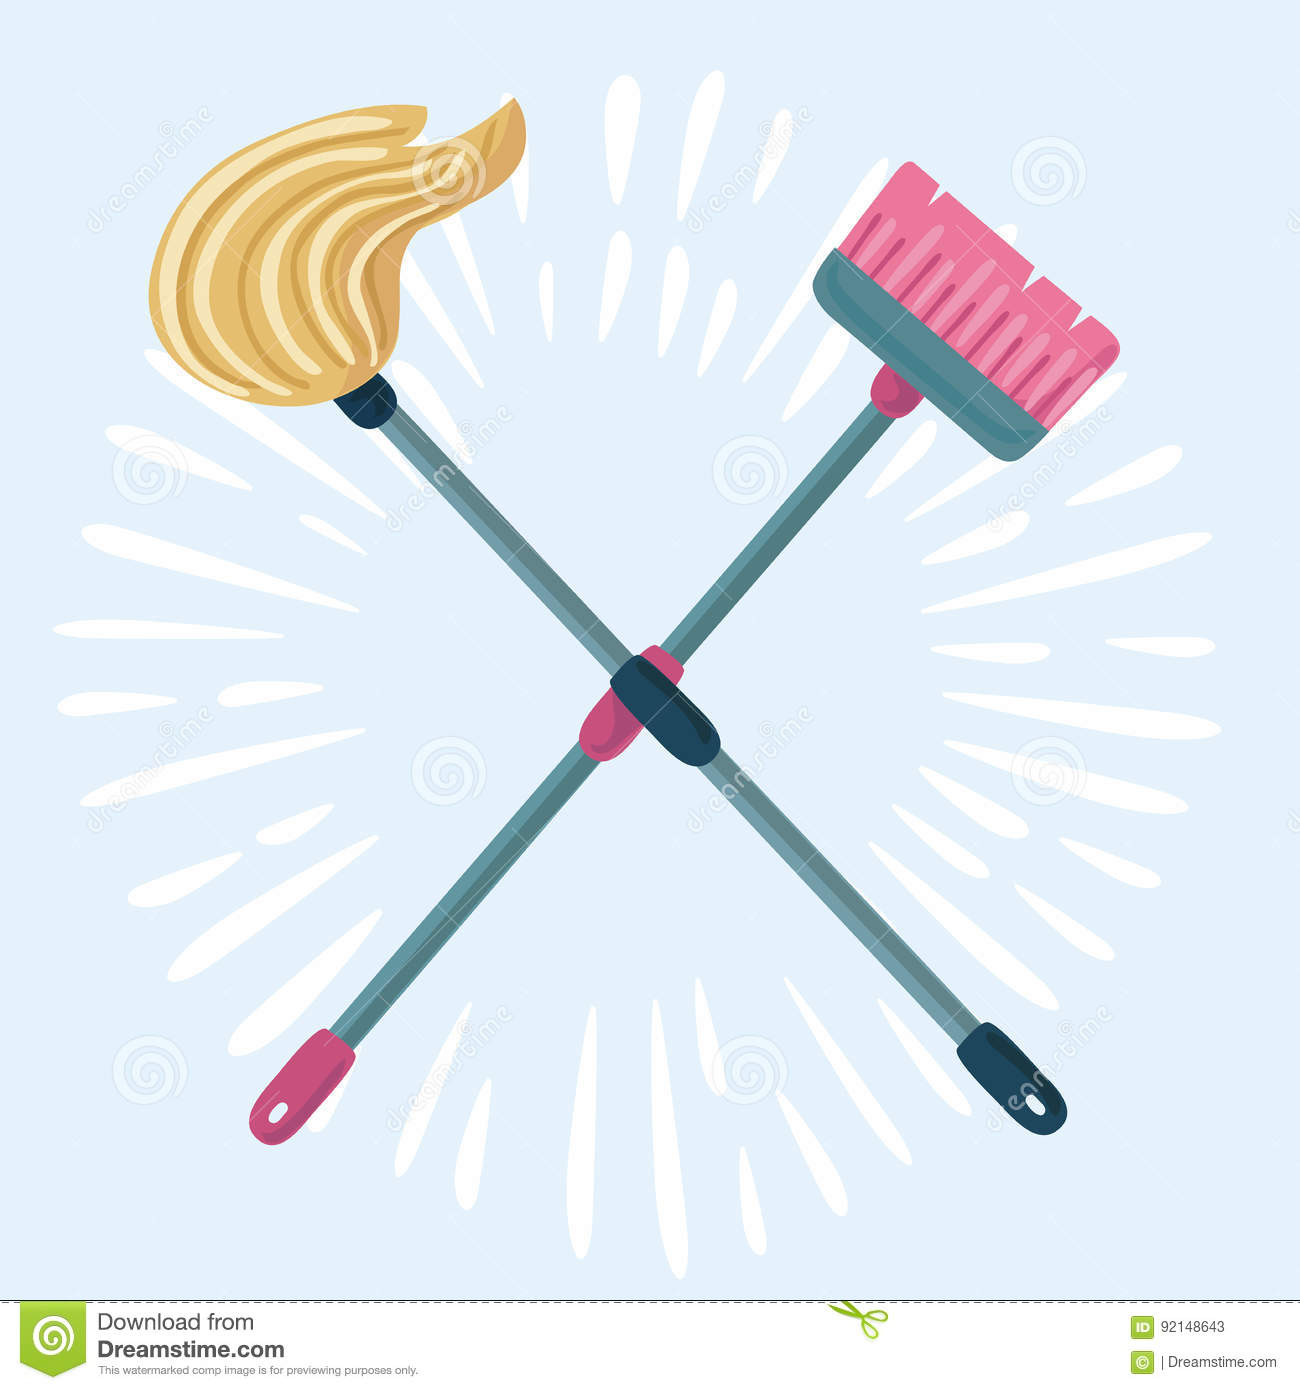 Cartoon Illustration Of Mop And Broom Cleaning Symbols Stock